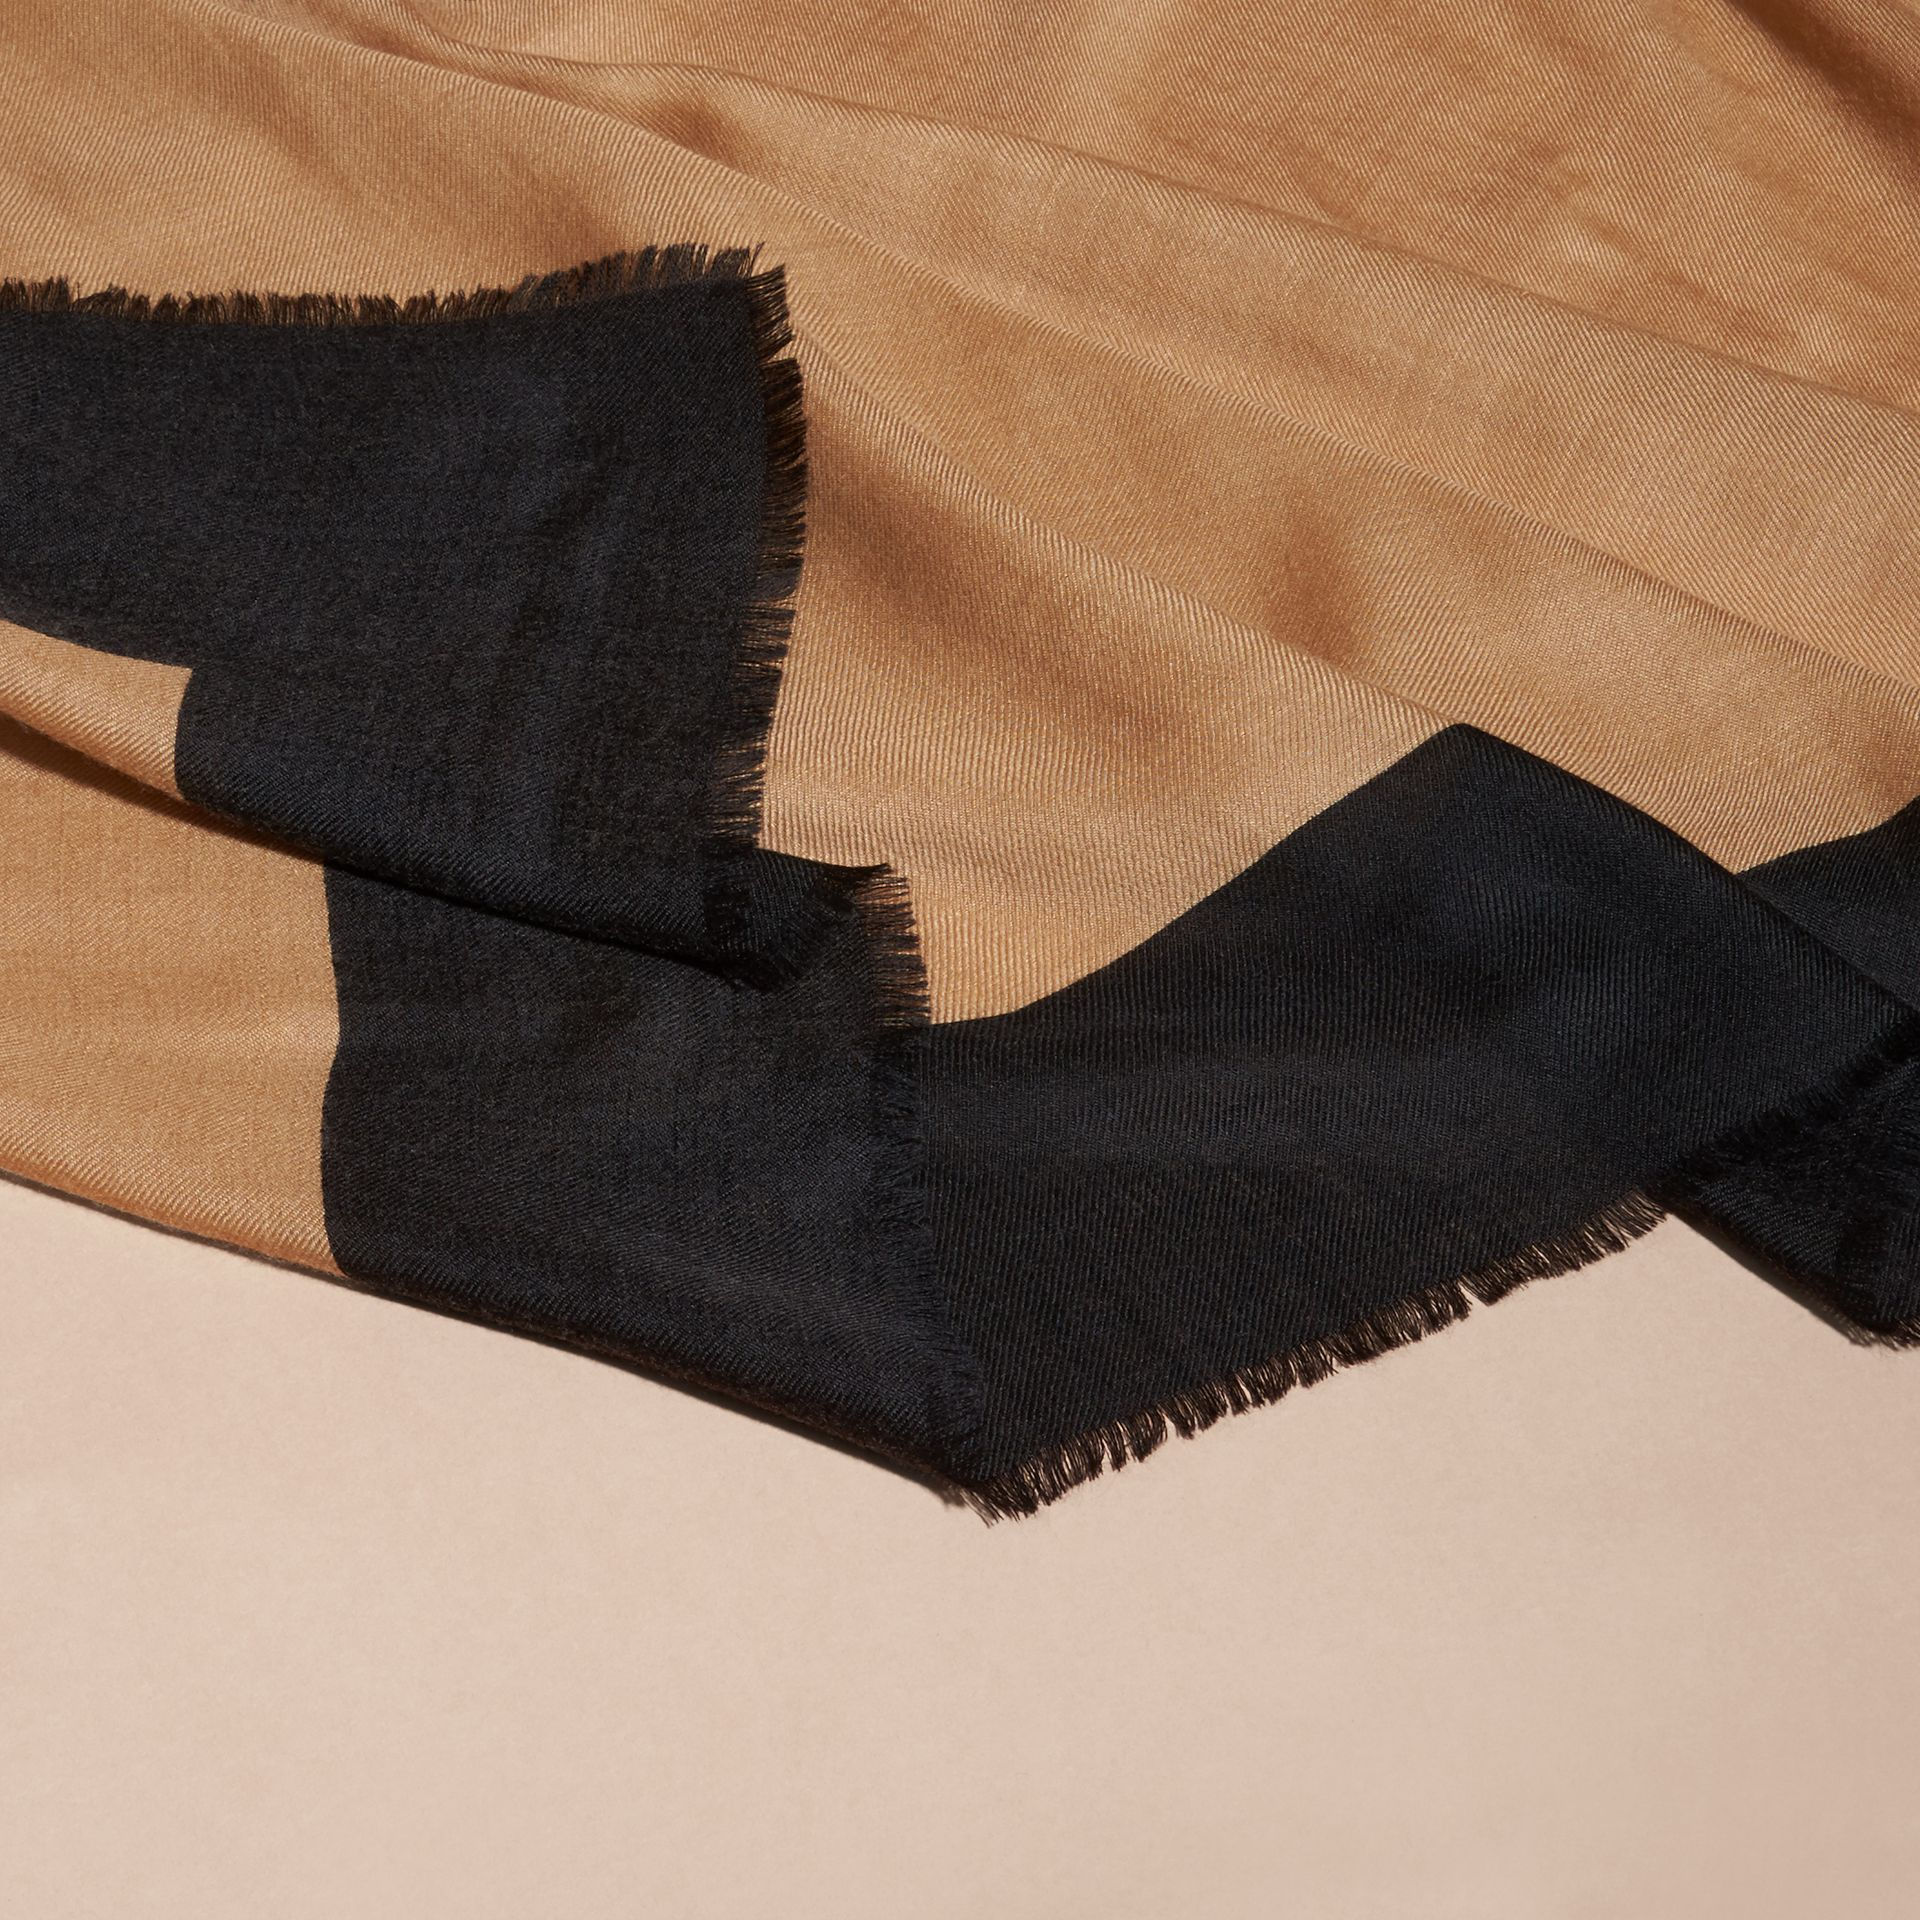 Camel/black Burberry Print Cashmere Scarf - gallery image 2